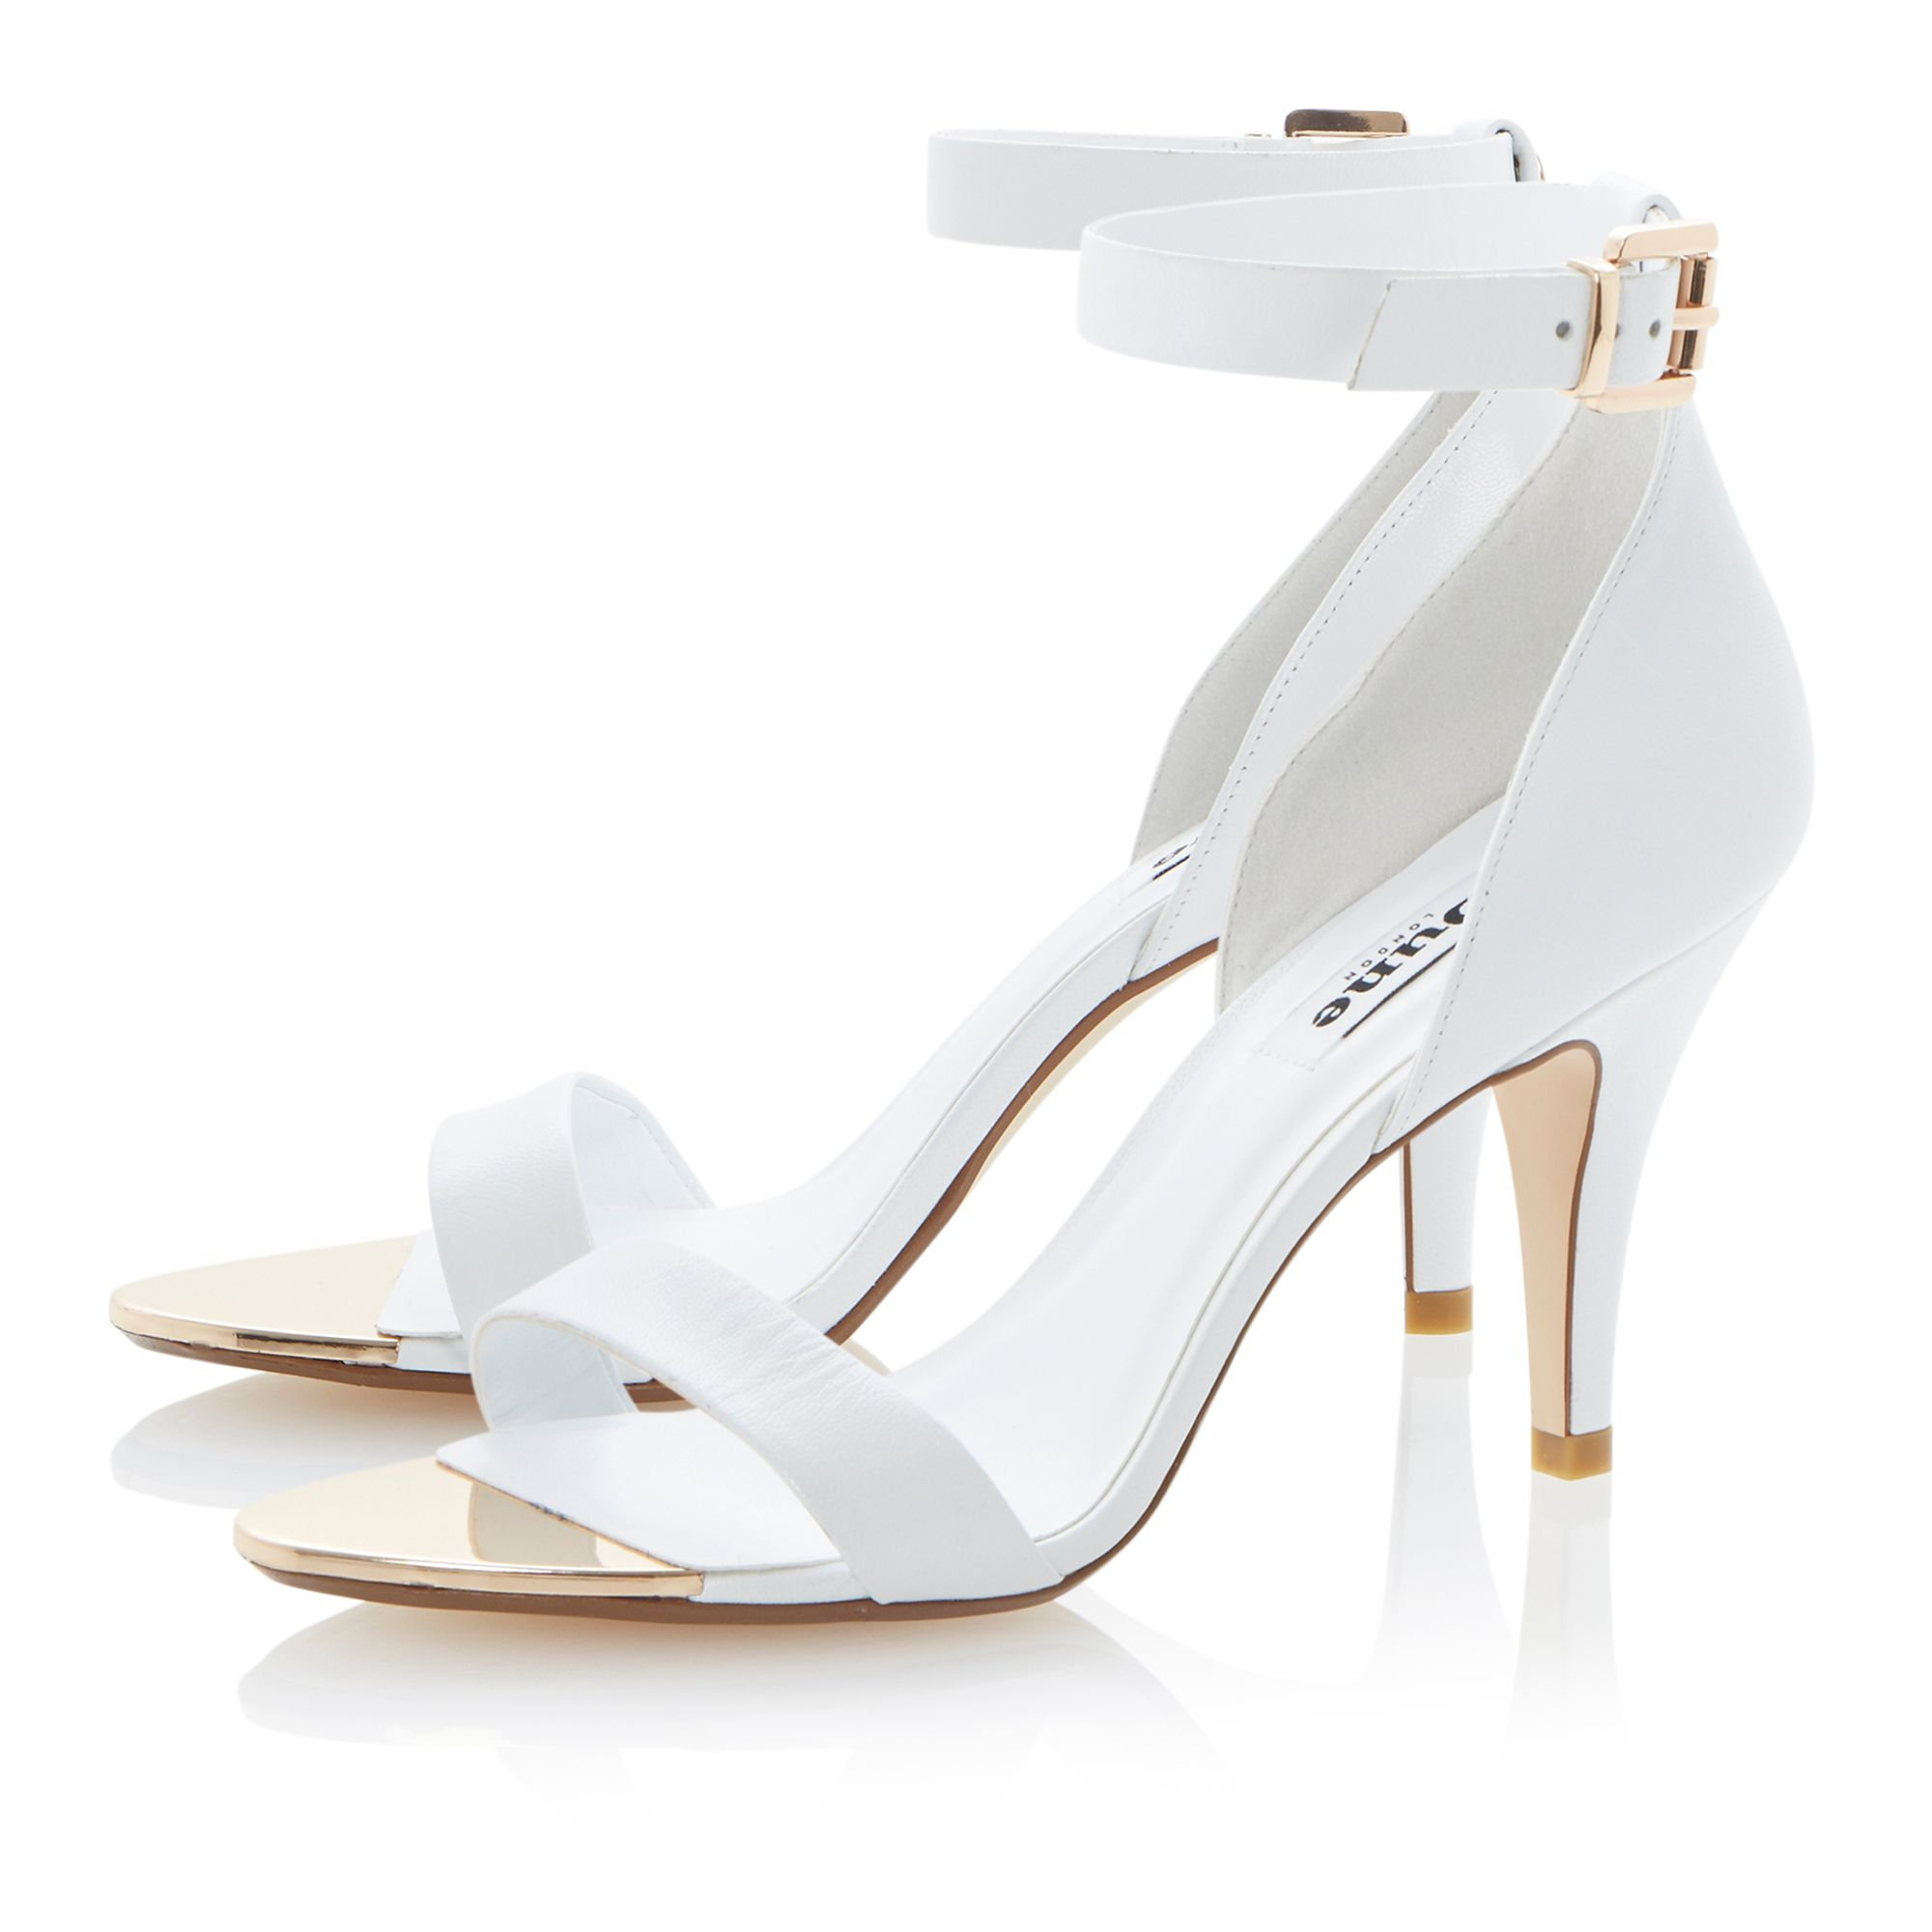 Hunnie leather ankle strap heeled sandals